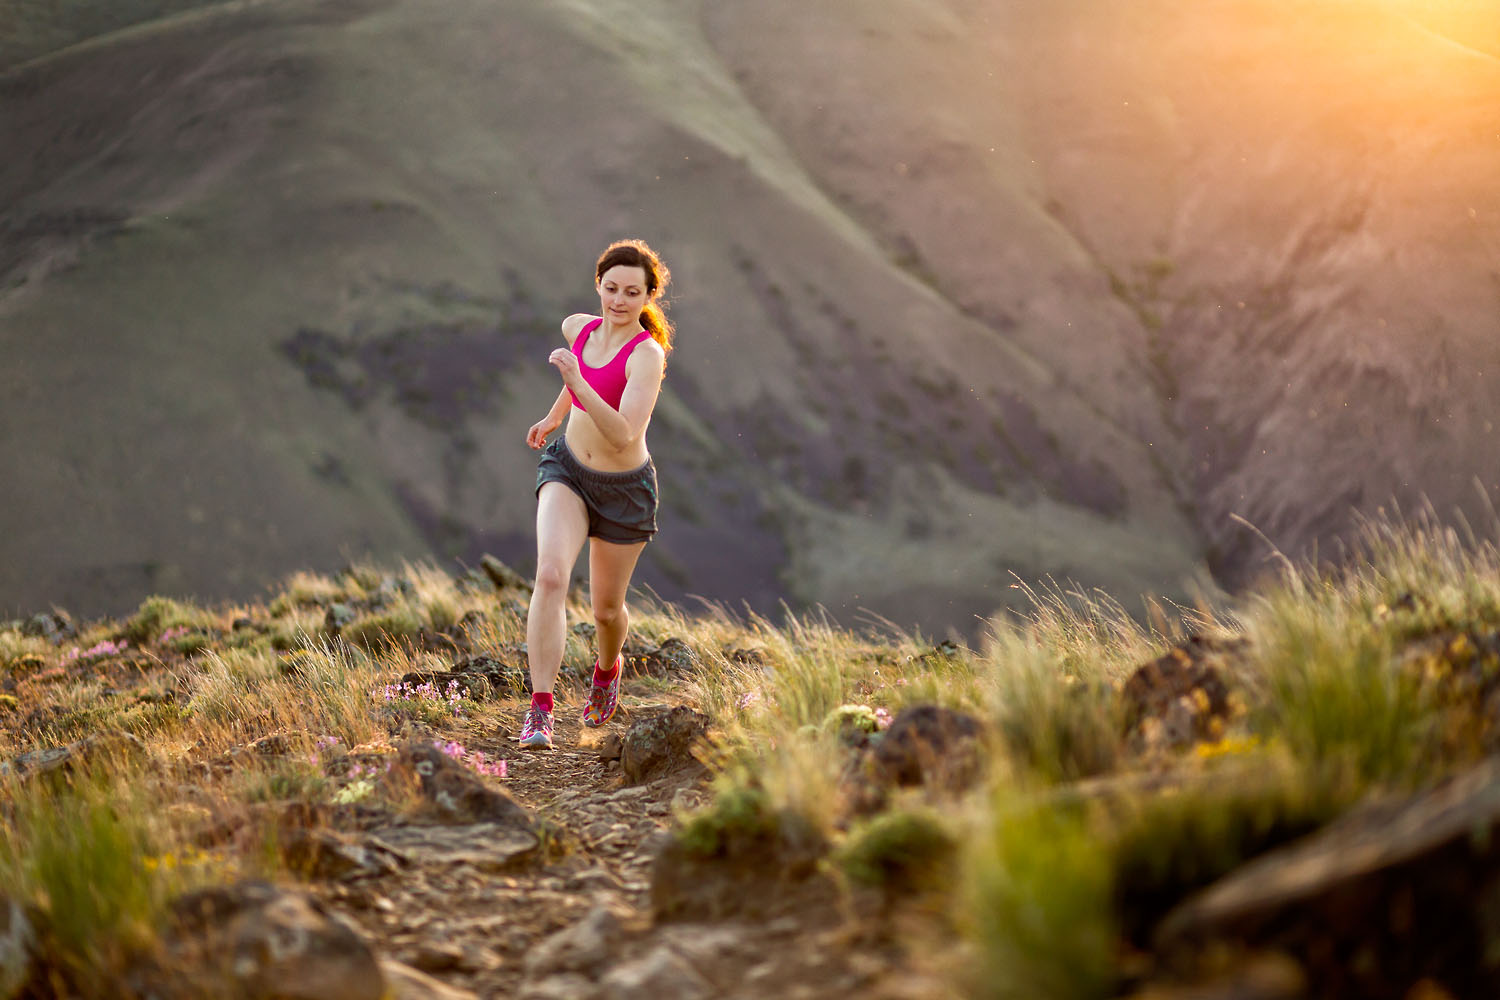 Adventure: Elizabeth Kovar trail running above Yakima Canyon at sunset, Cascade Foothills, Washington